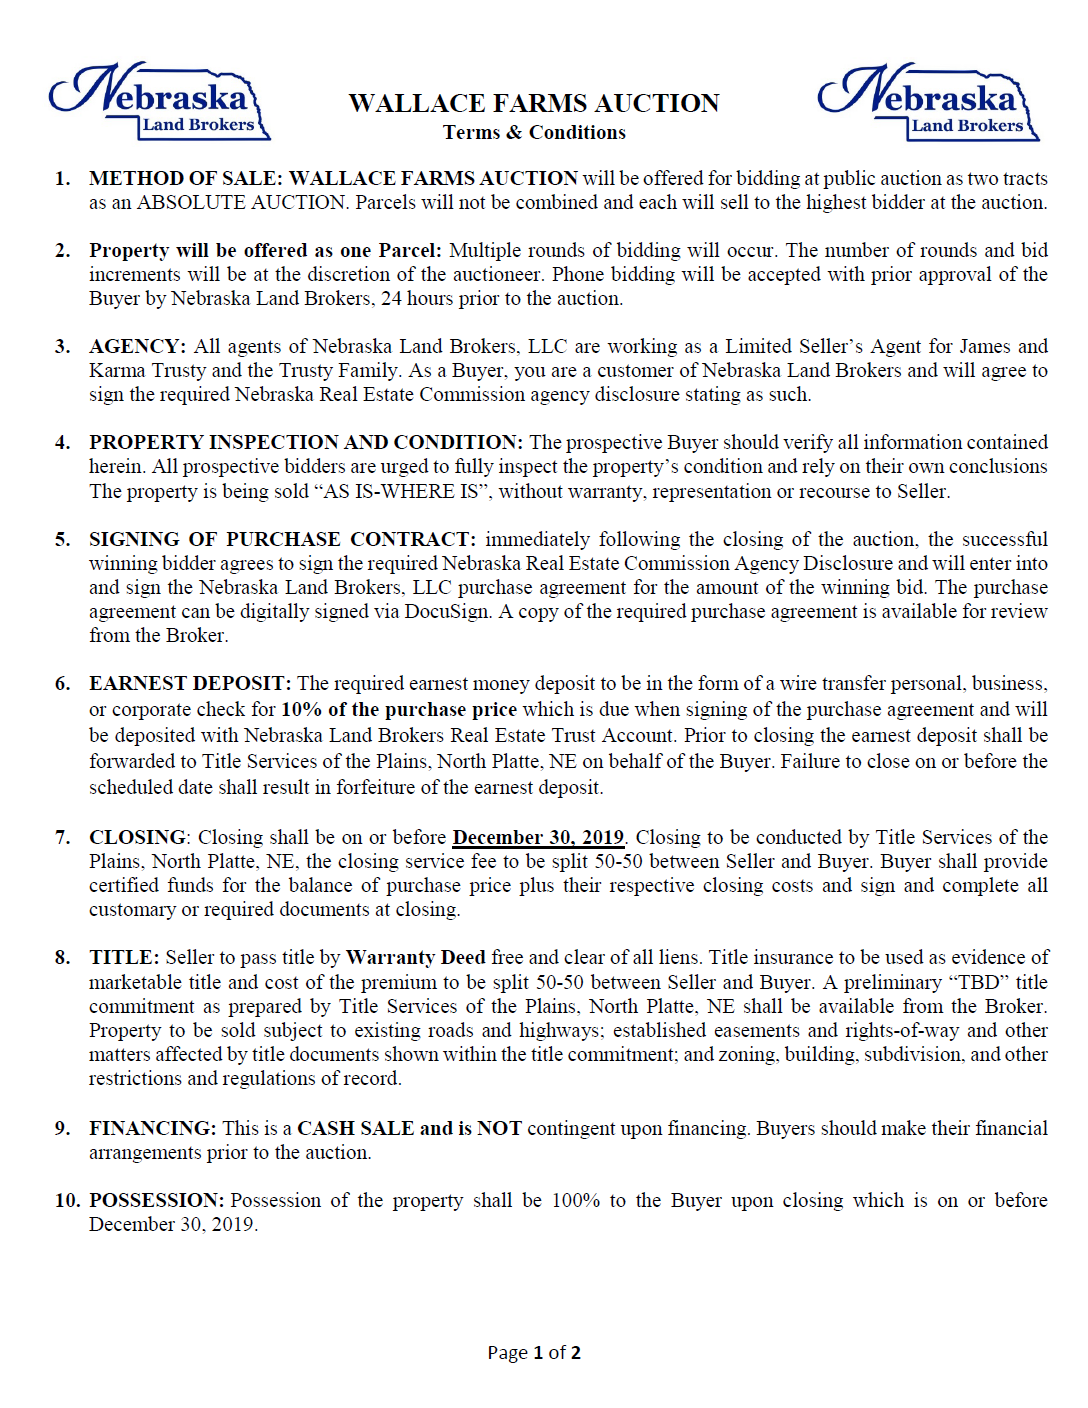 Terms and Conditions Page 1.png